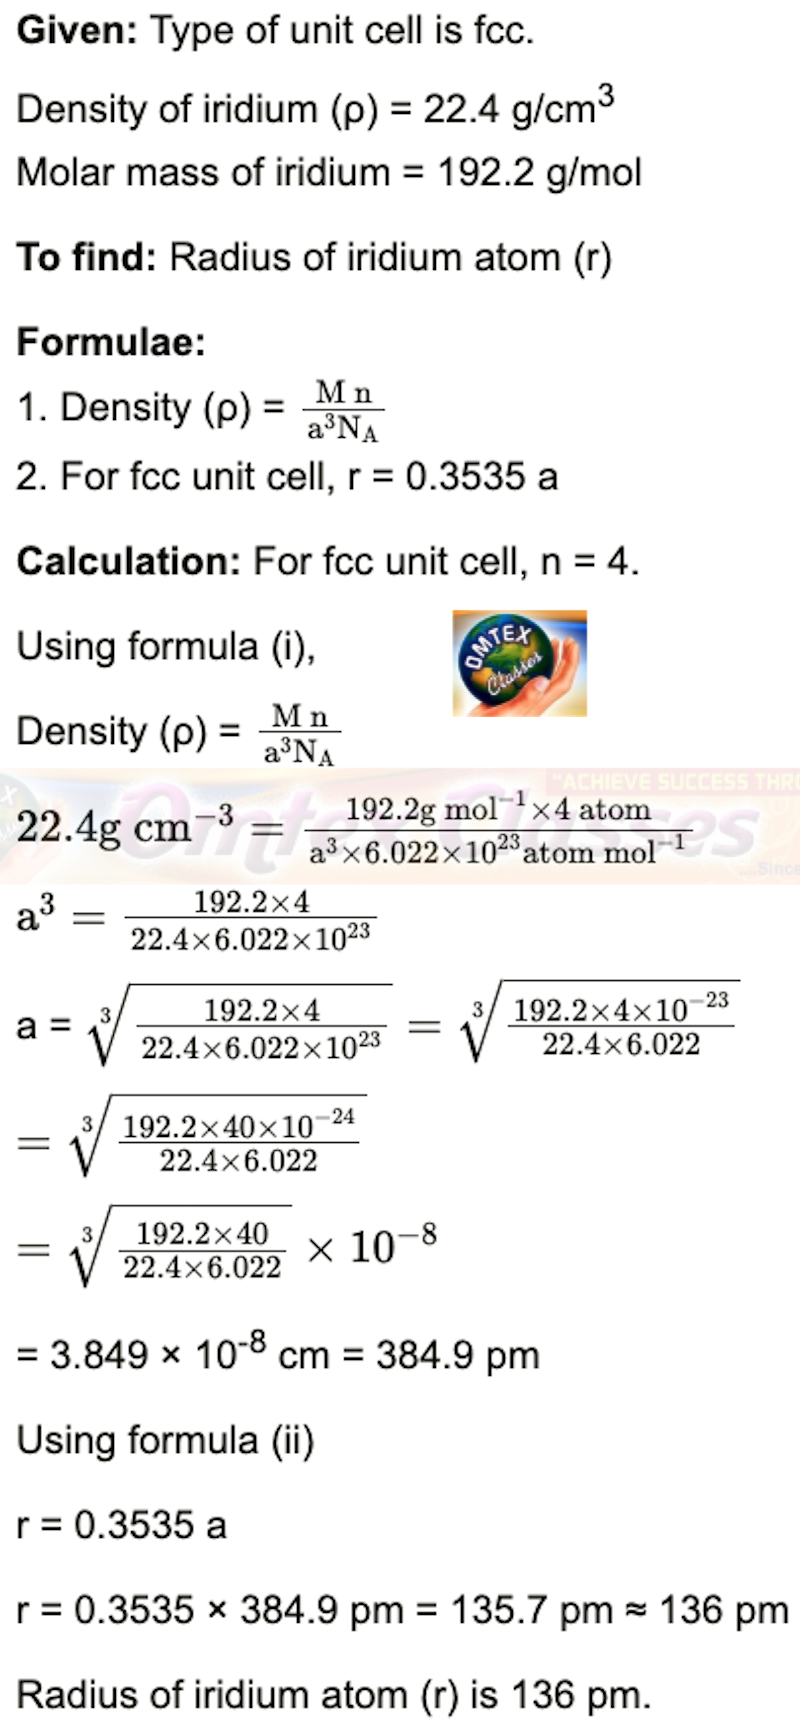 Chapter 1: Solid State  Balbharati solutions for Chemistry 12th Standard HSC Maharashtra State Board chapter 1 - Solid State 2020 - 2021